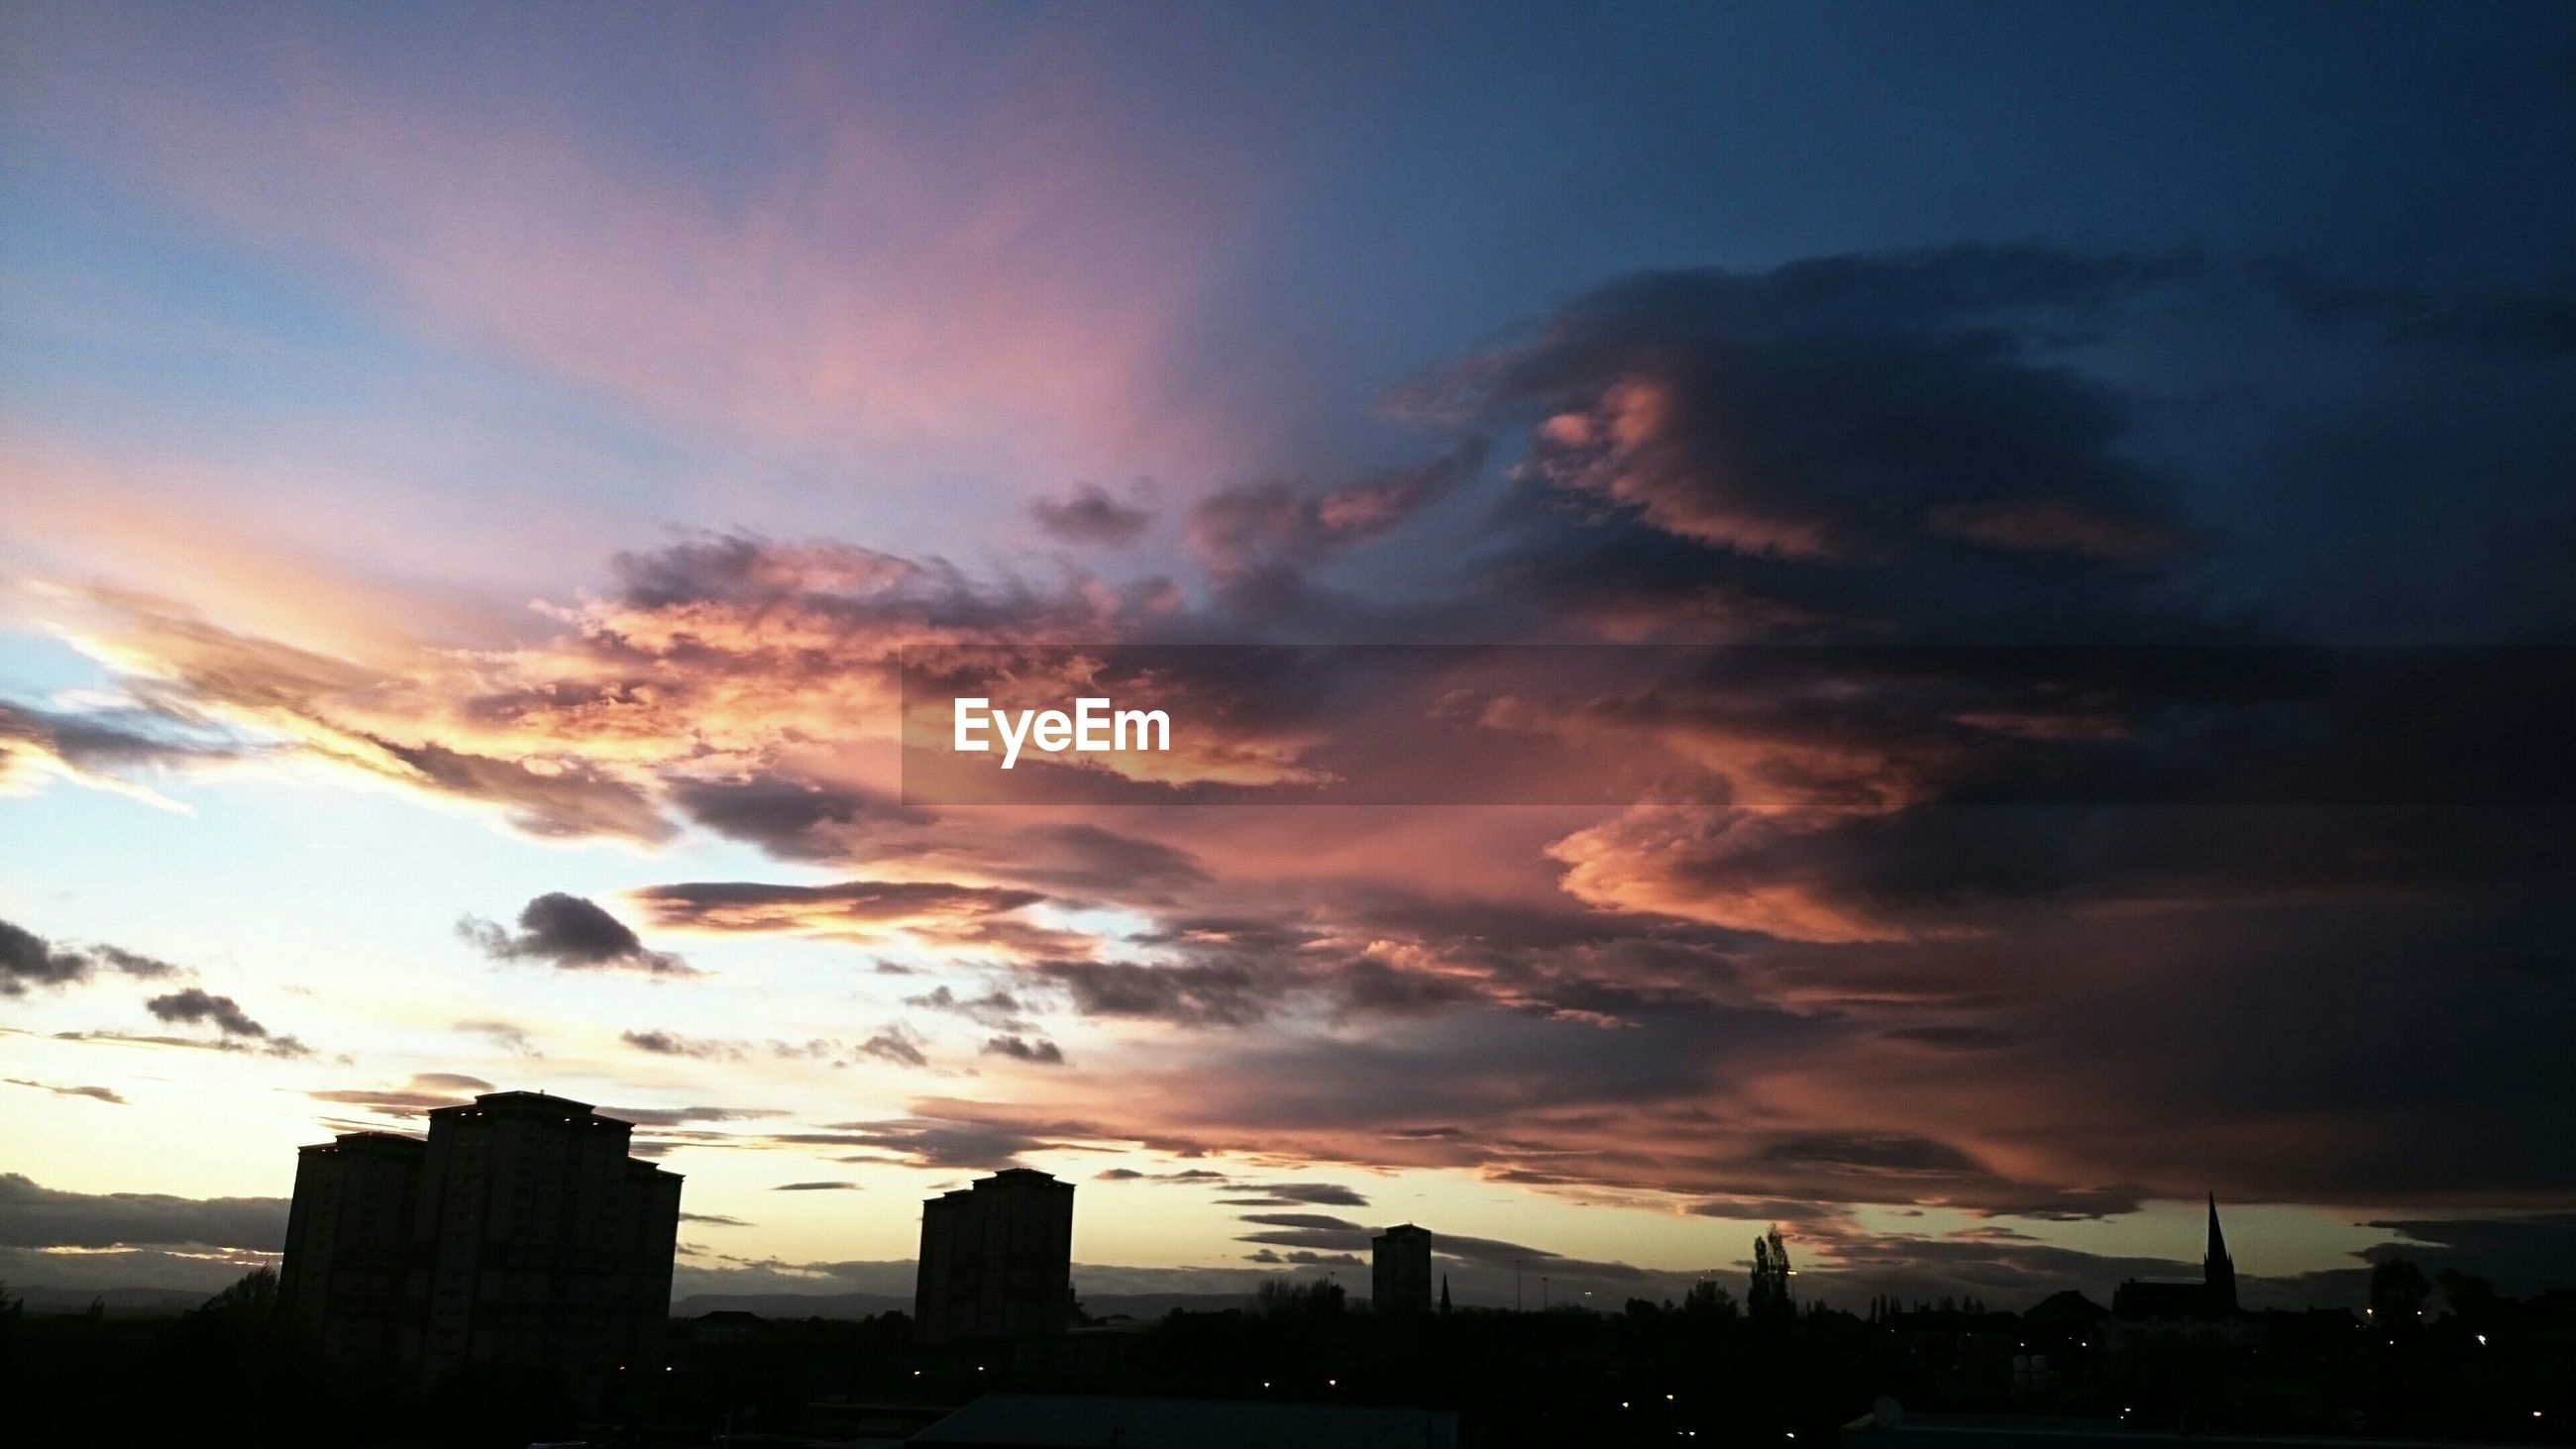 sunset, sky, cloud - sky, silhouette, building exterior, built structure, cloudy, architecture, dramatic sky, weather, cloud, beauty in nature, scenics, dusk, city, orange color, nature, overcast, low angle view, outdoors